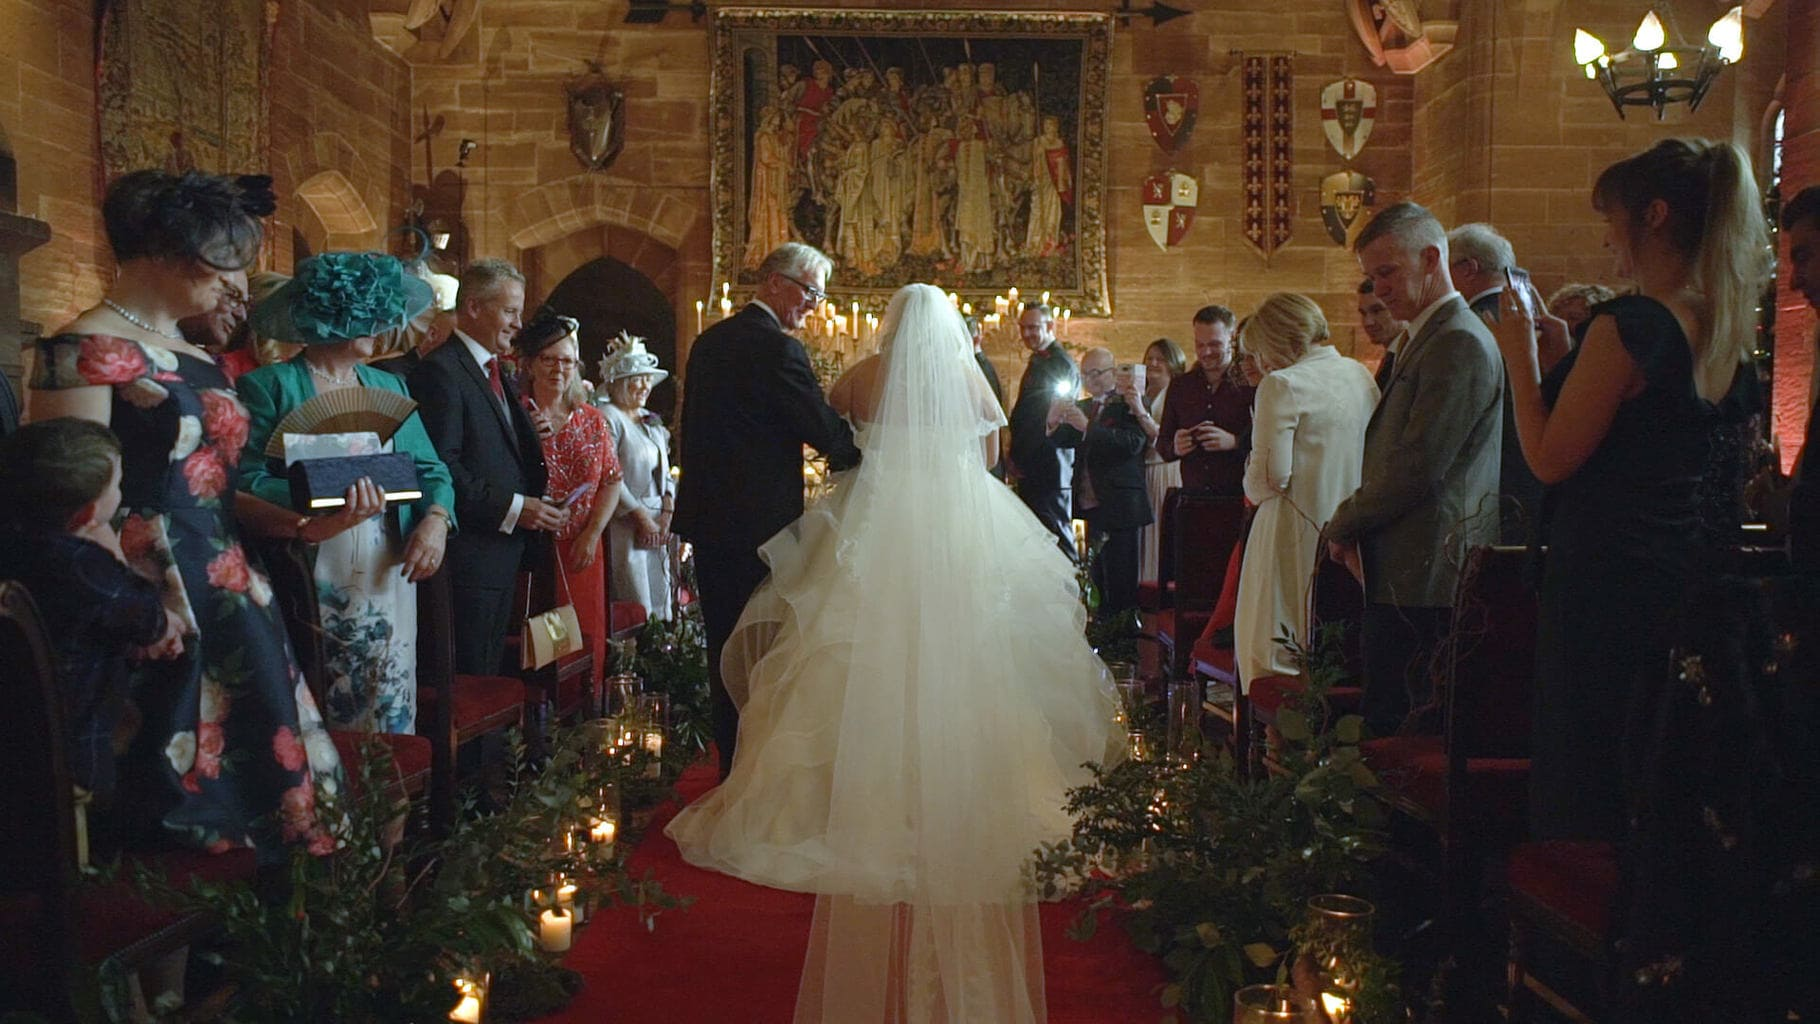 Wedding Videography in Cheshire - Harvey Films - Husband